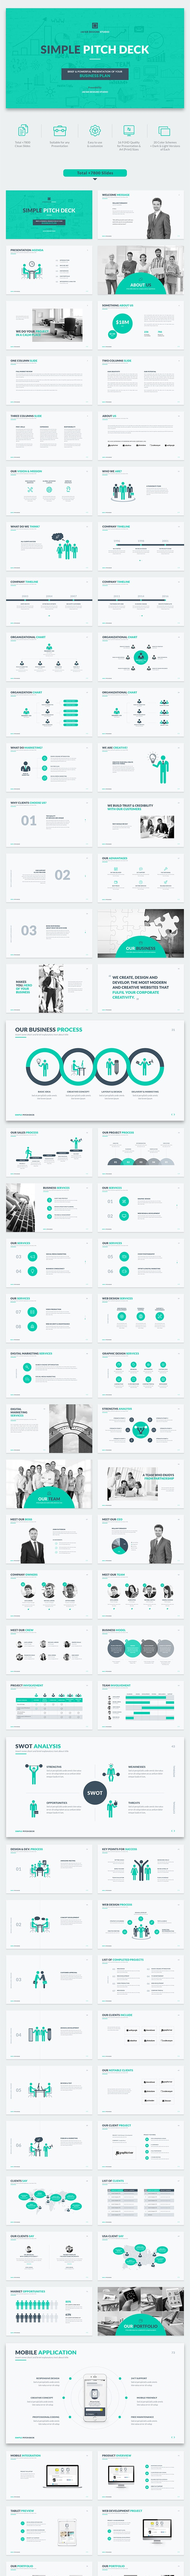 Simple Pitch Deck PowerPoint Template - Pitch Deck PowerPoint Templates